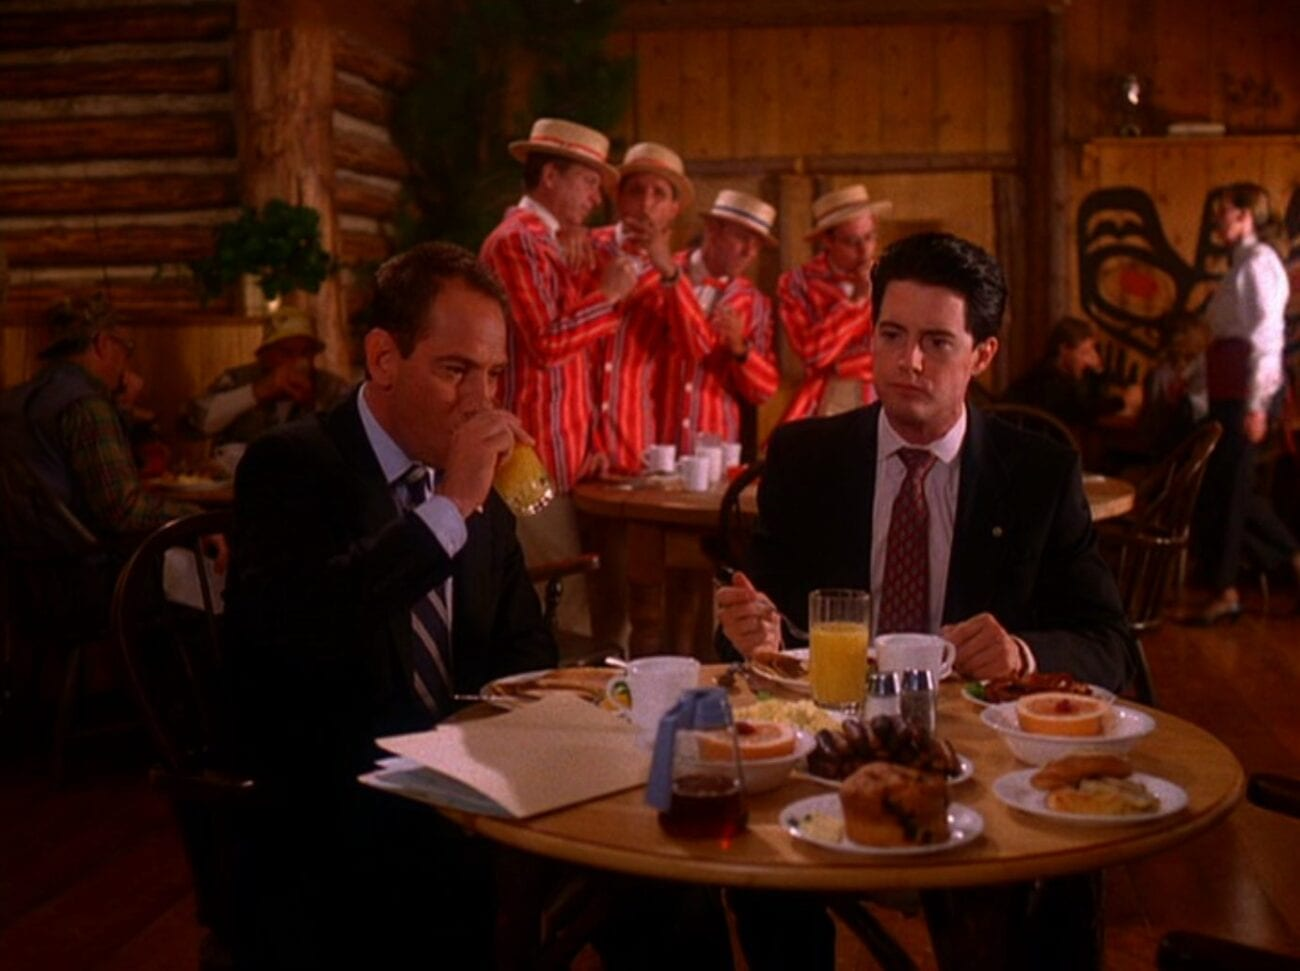 Albert and Cooper have breakfast while a barbershop quartet sing